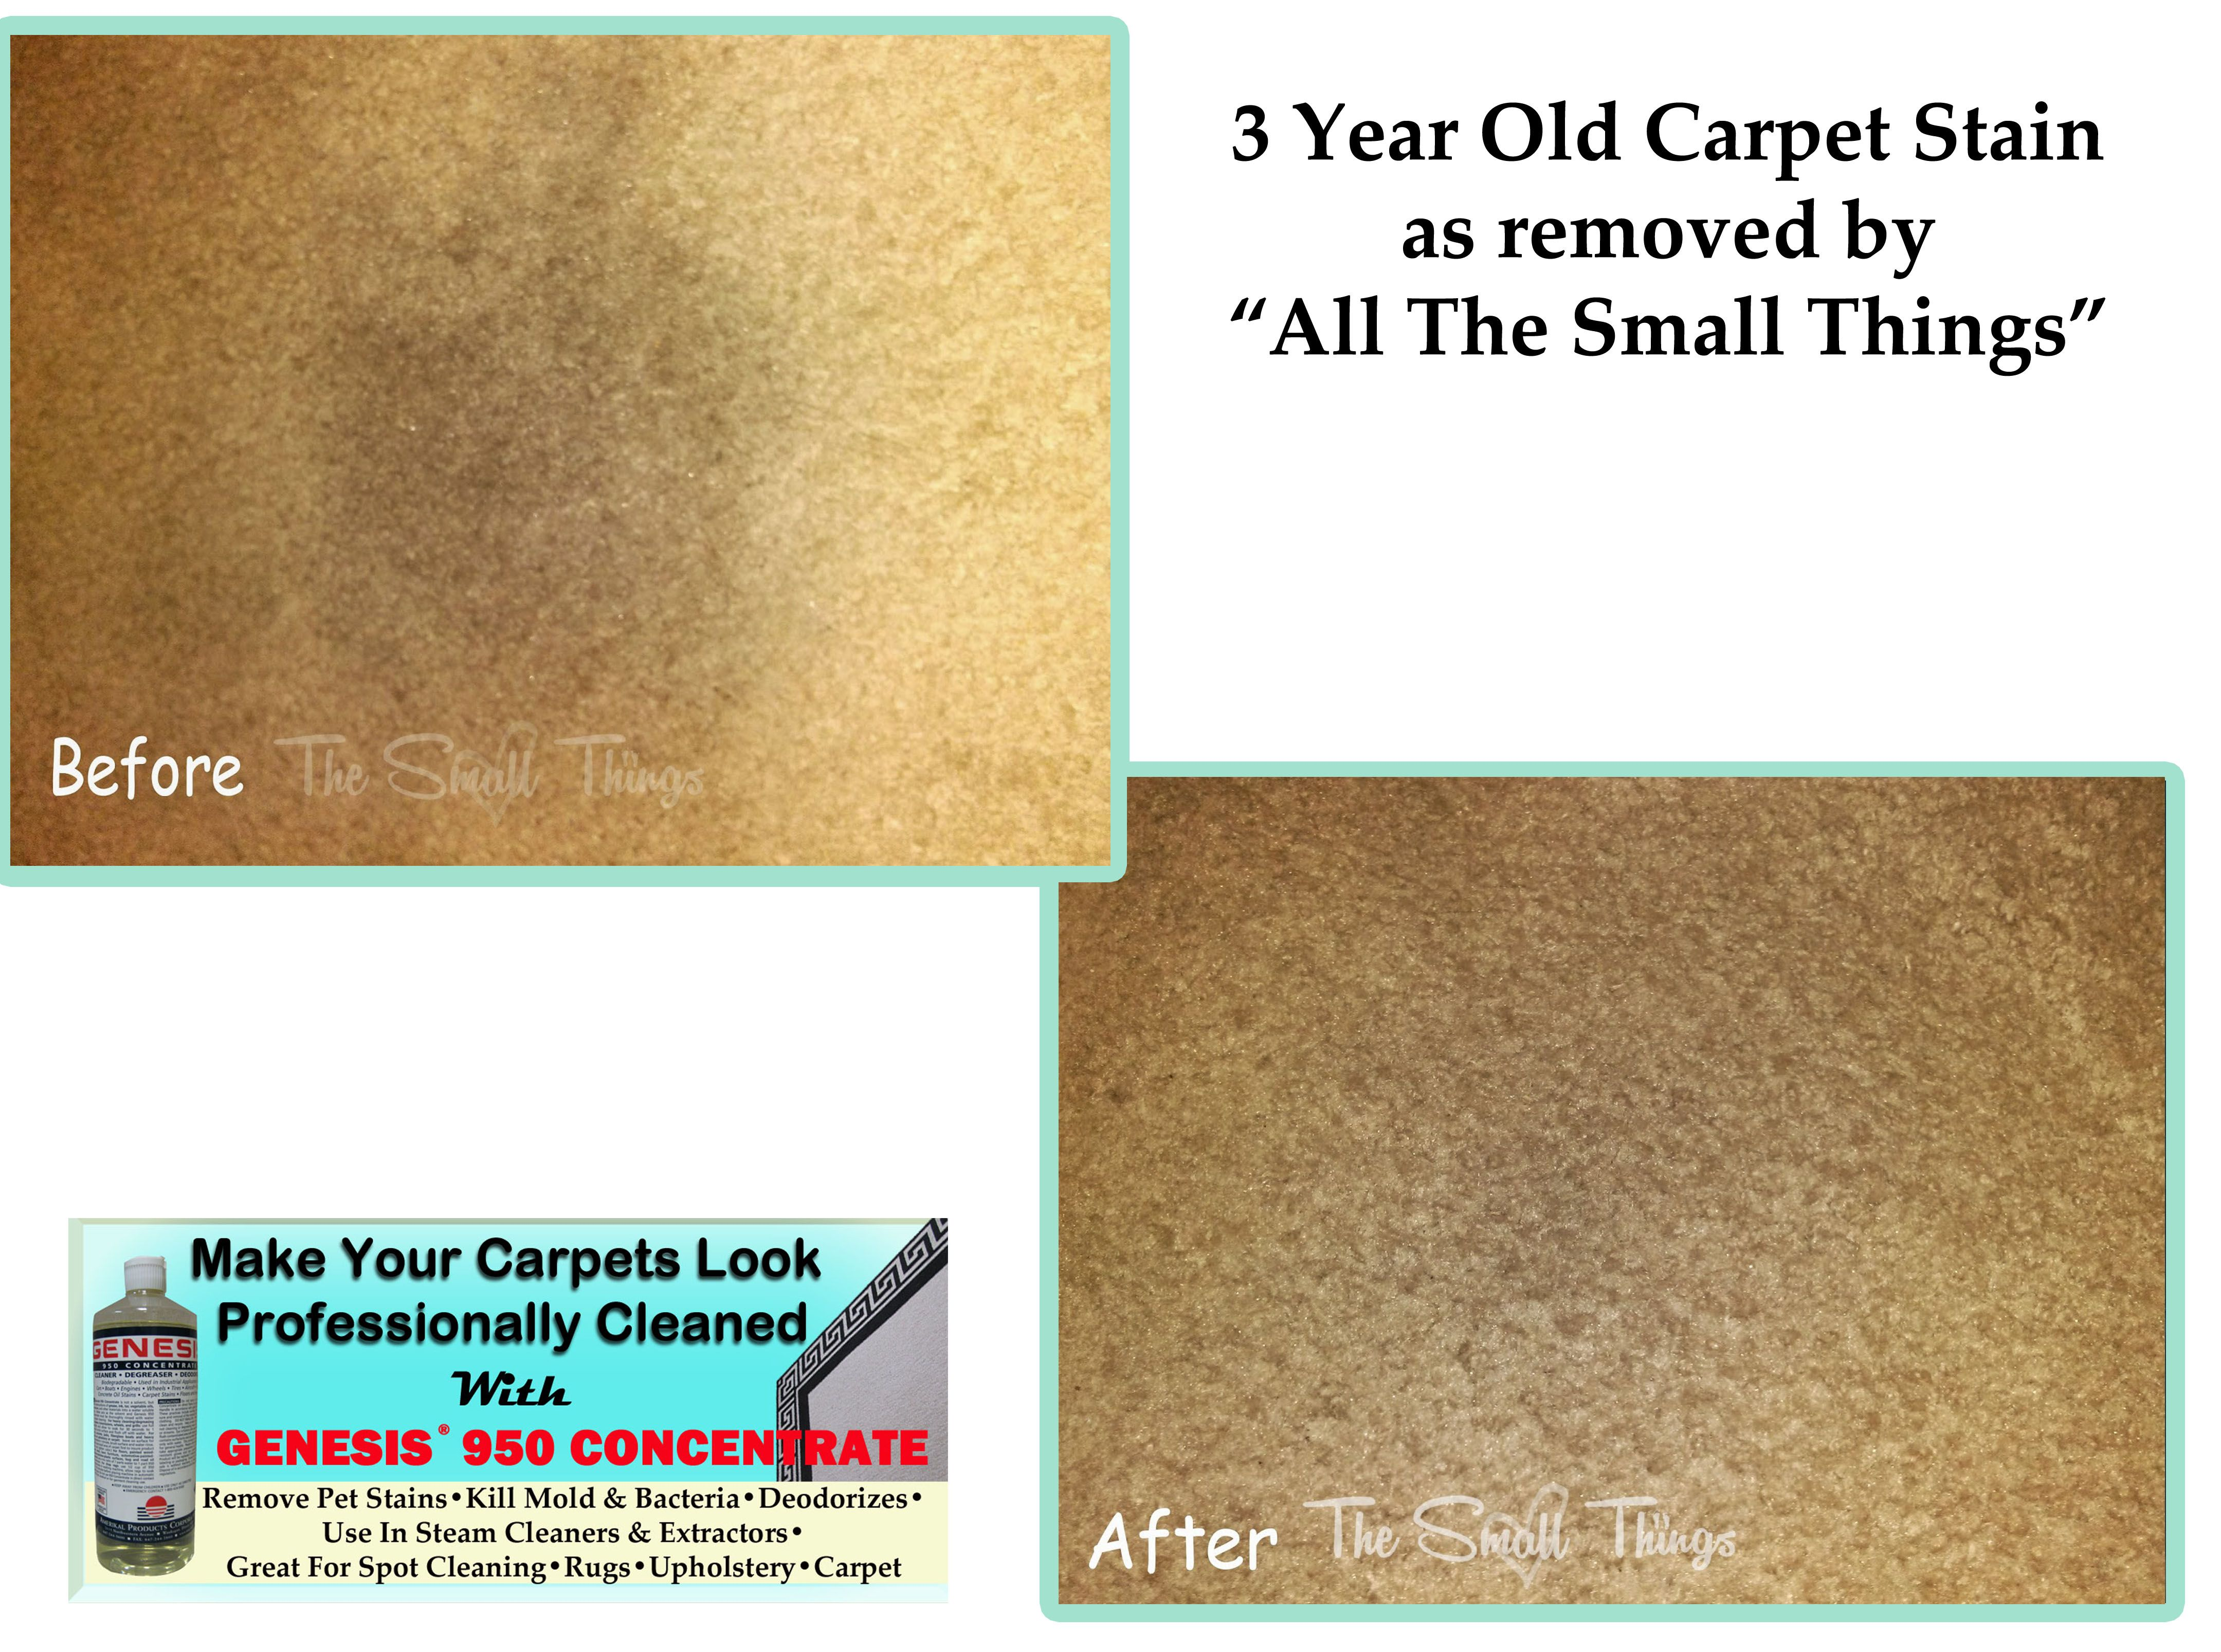 Stain Remover Before After Carpet Stains As Removed By The Small Things How To Clean Old Carpet Stains Remove Pet Stains Pet Stains How To Remove